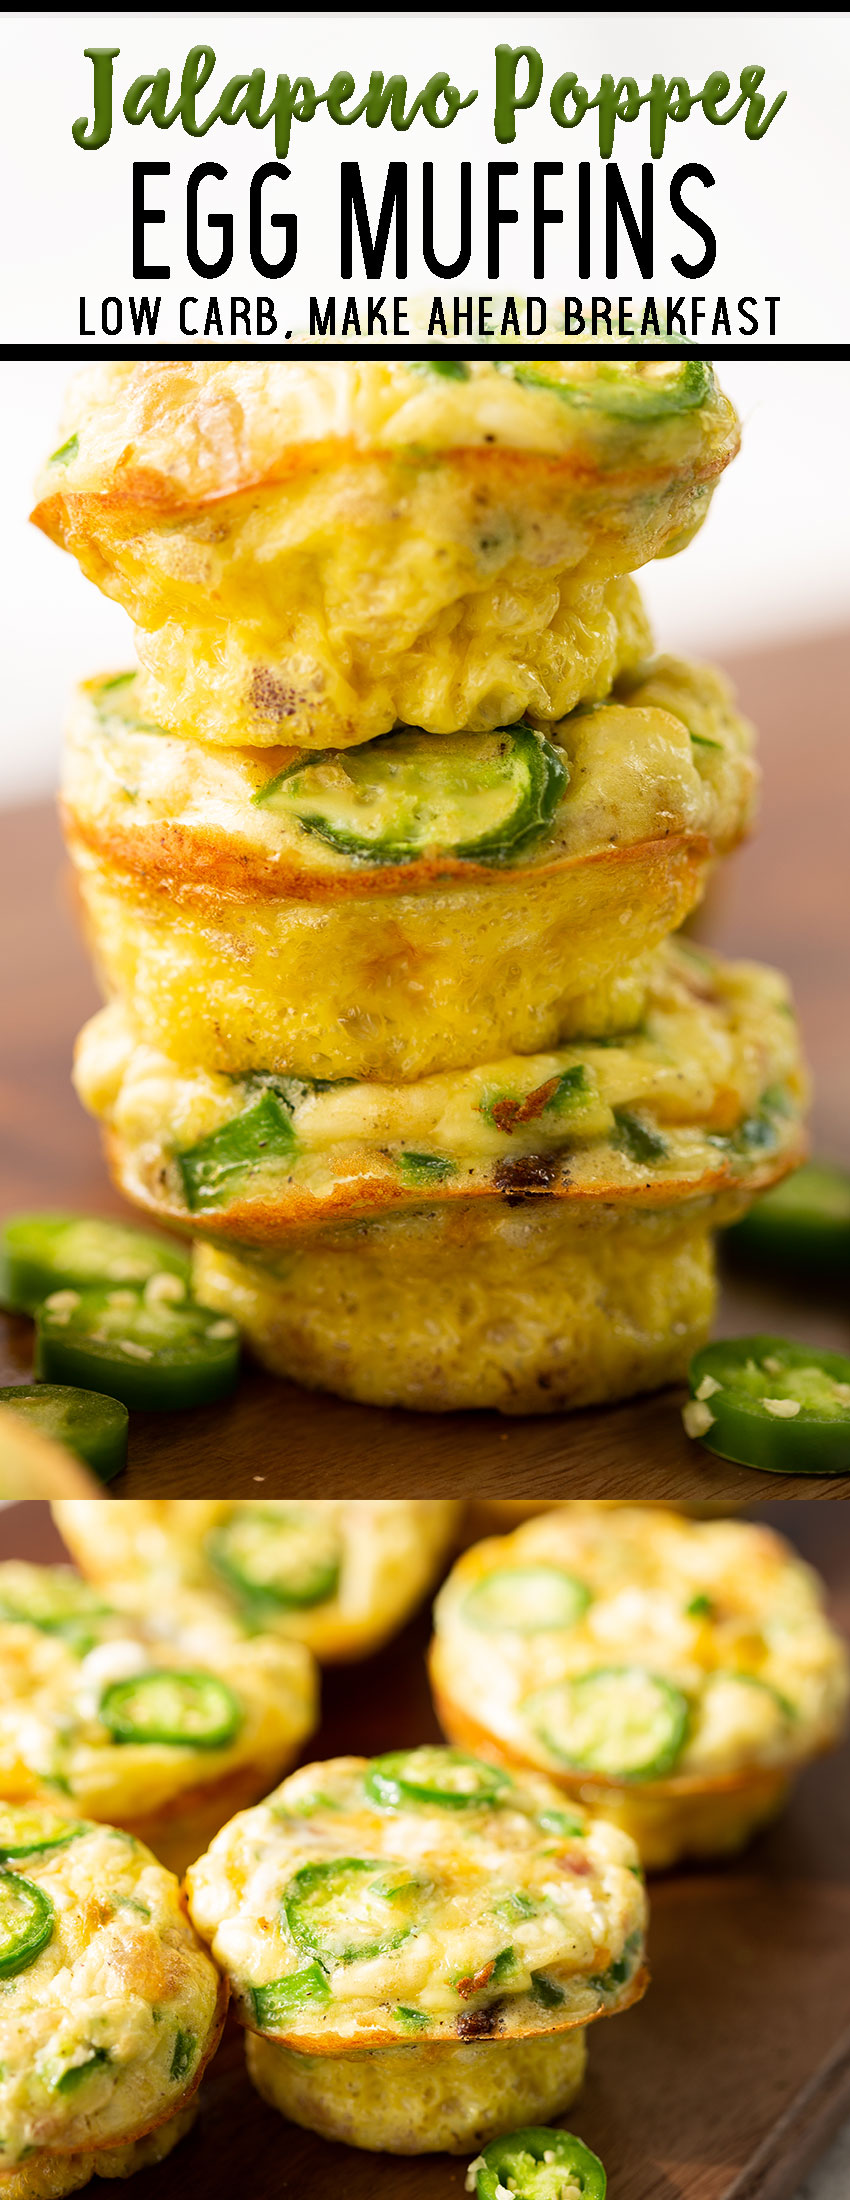 Jalapeno popper egg muffins in a stack